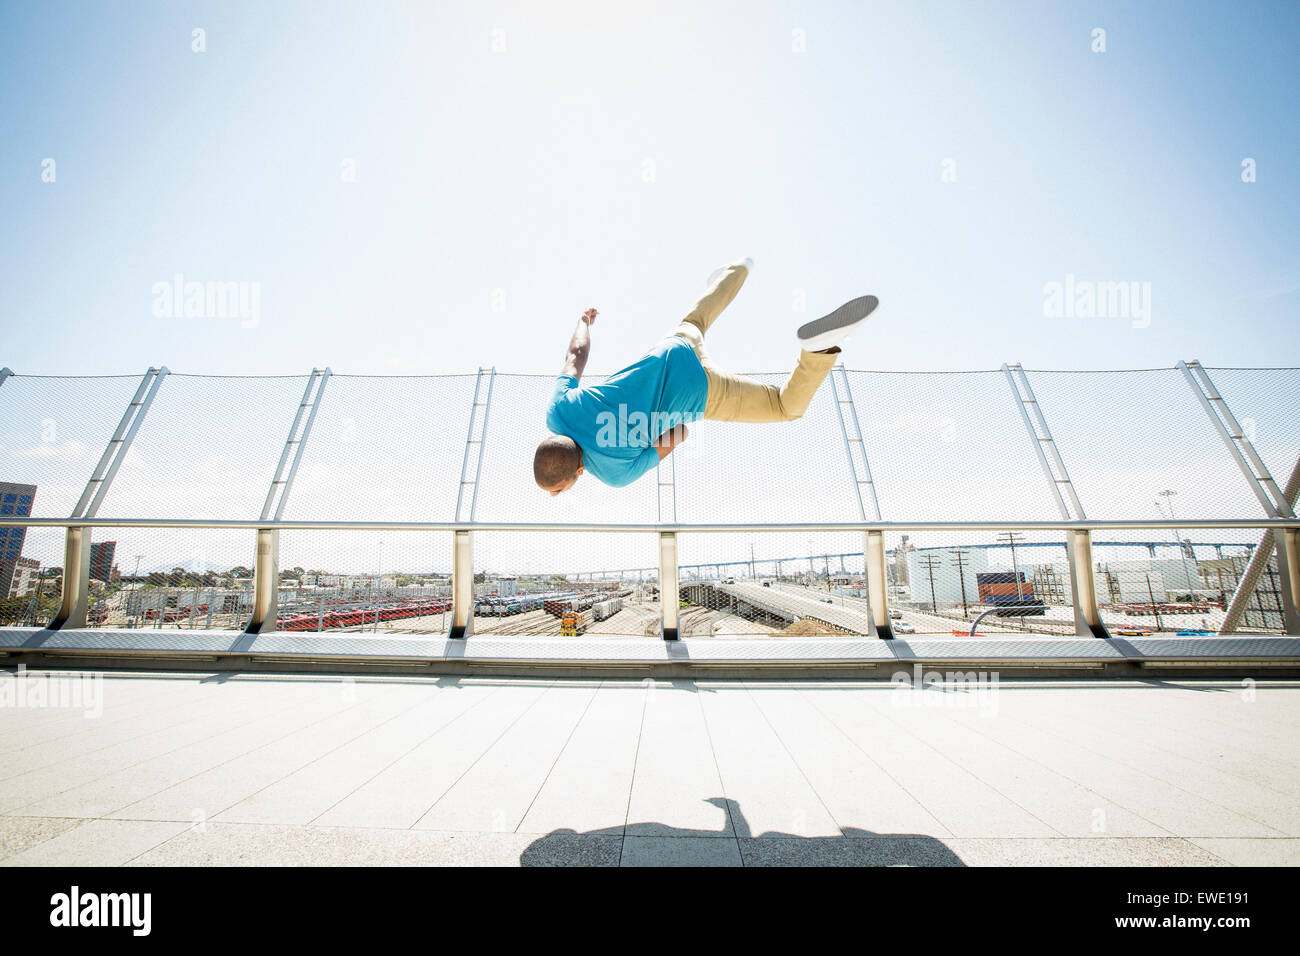 Young man somersaulting parcour parkour free running - Stock Image